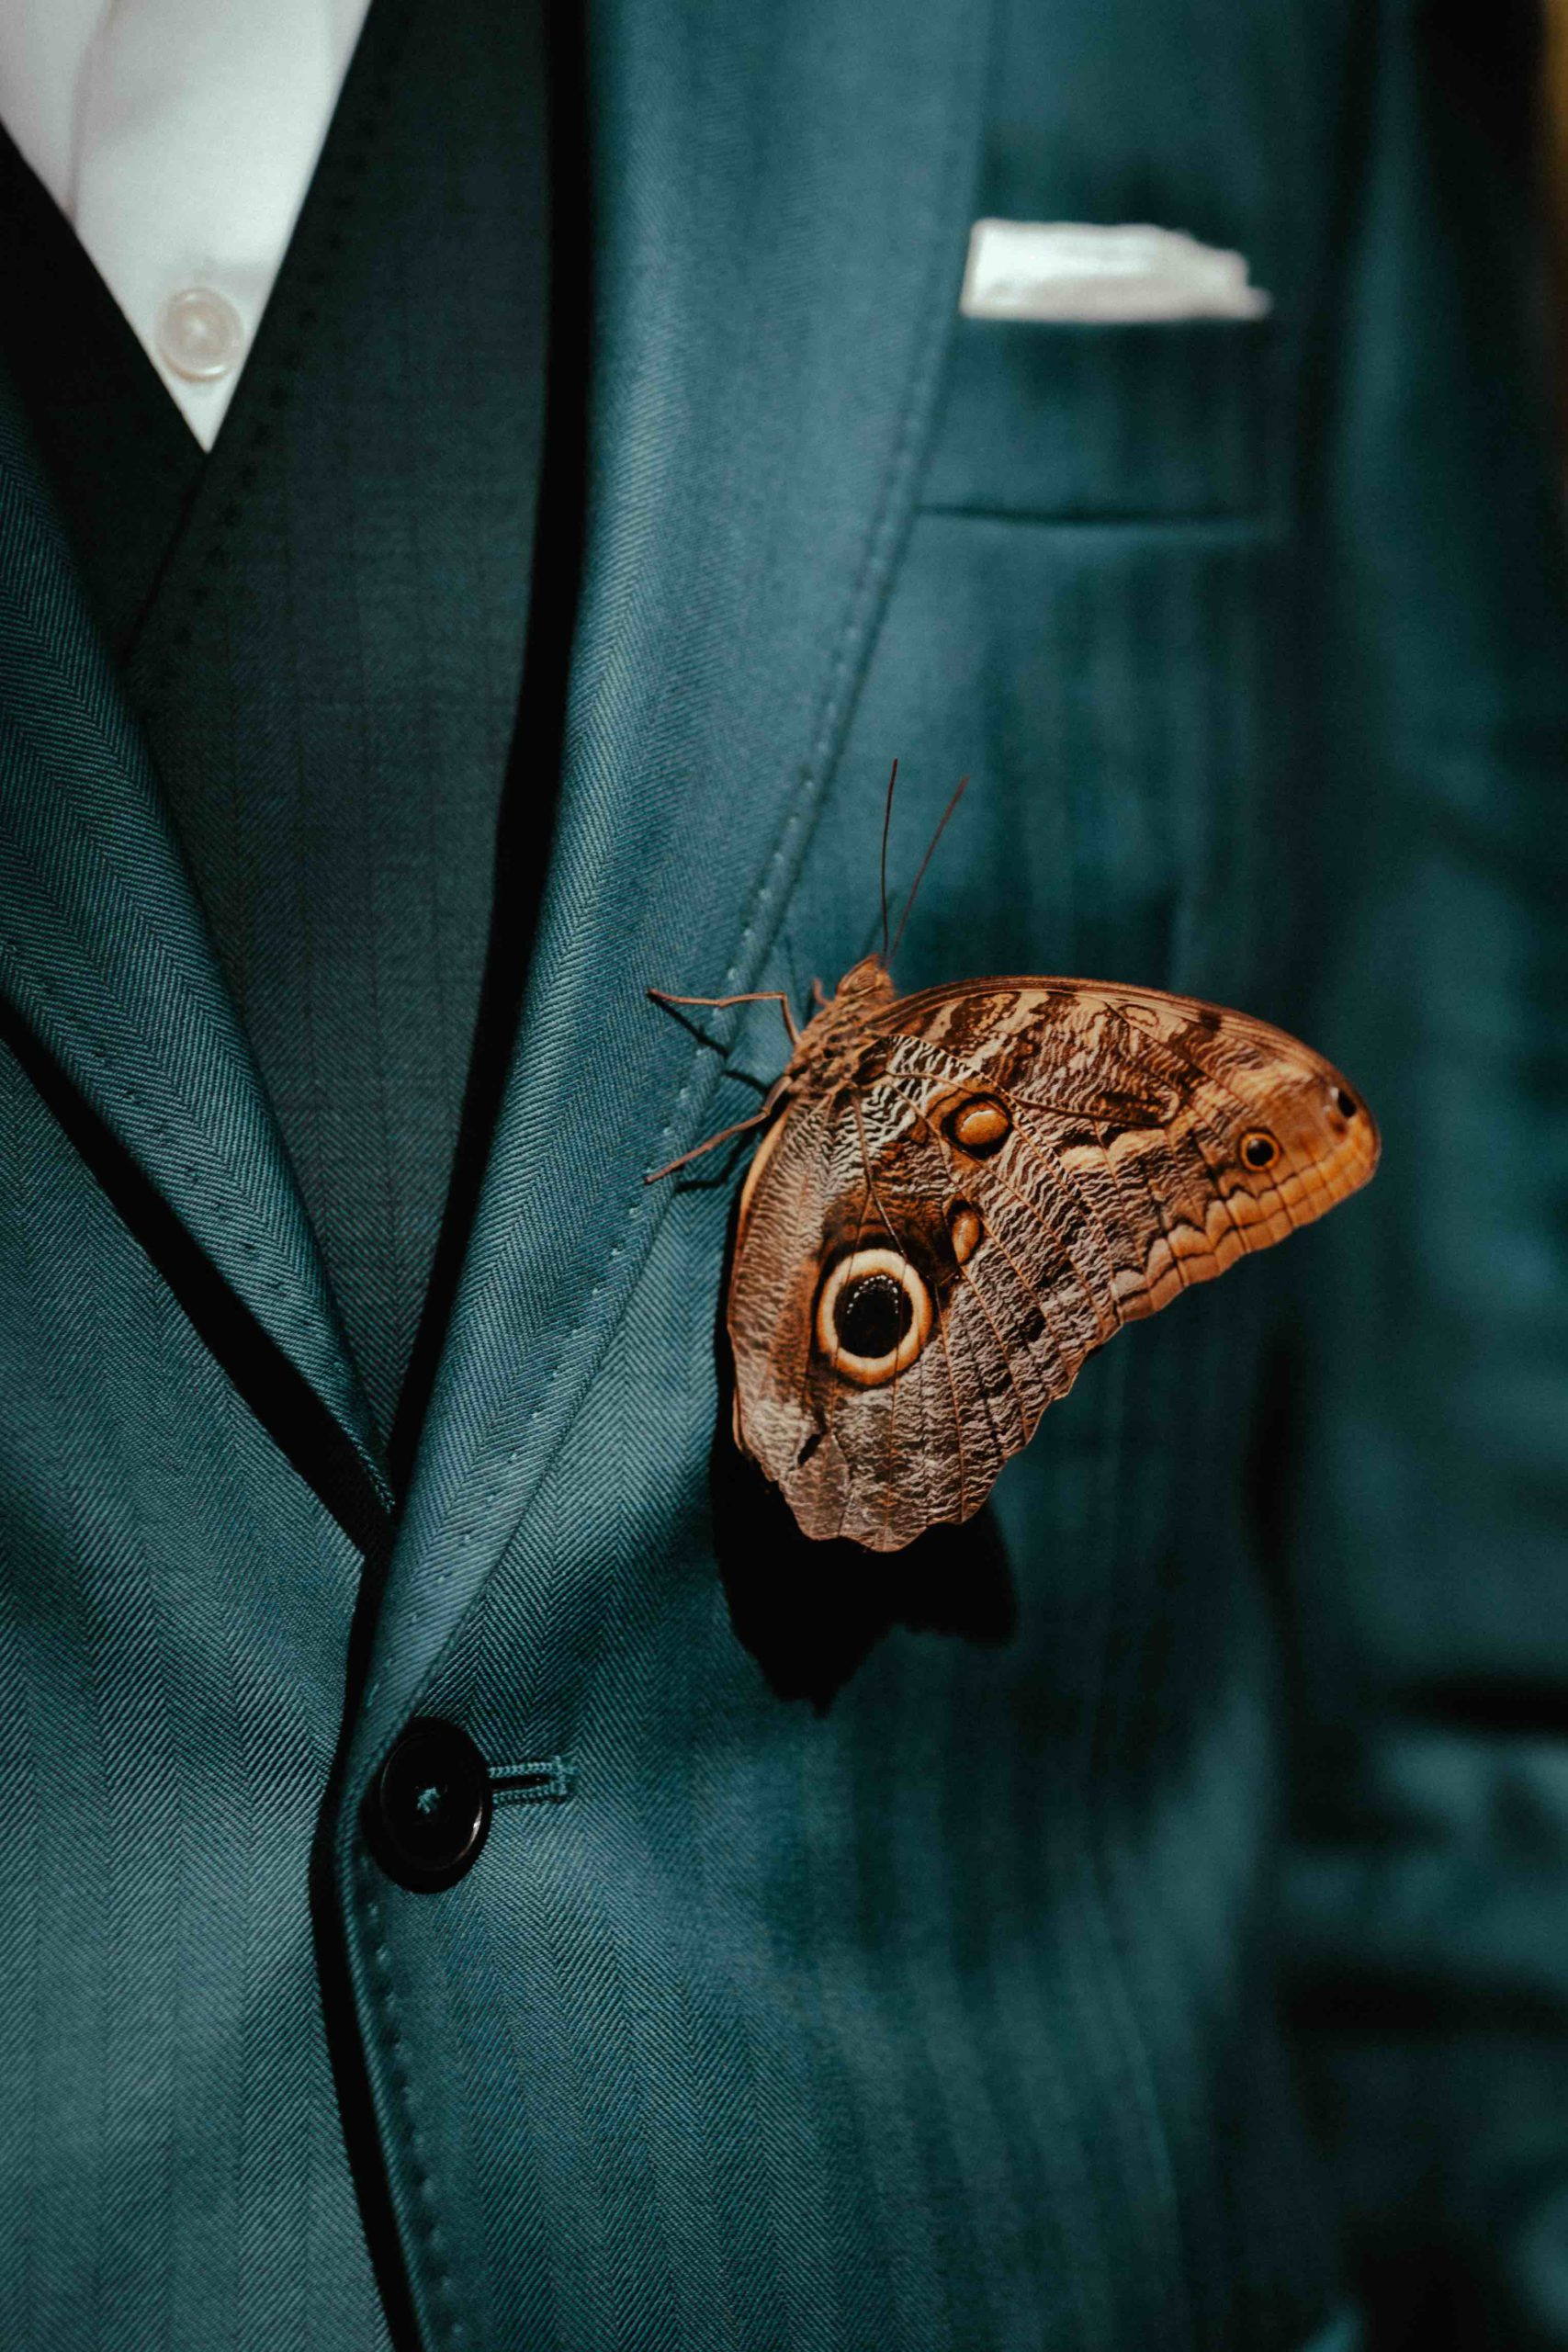 Dalbiondo buttoned jacket and double breasted waistcoat with a butterfly resting on jacket's lapel